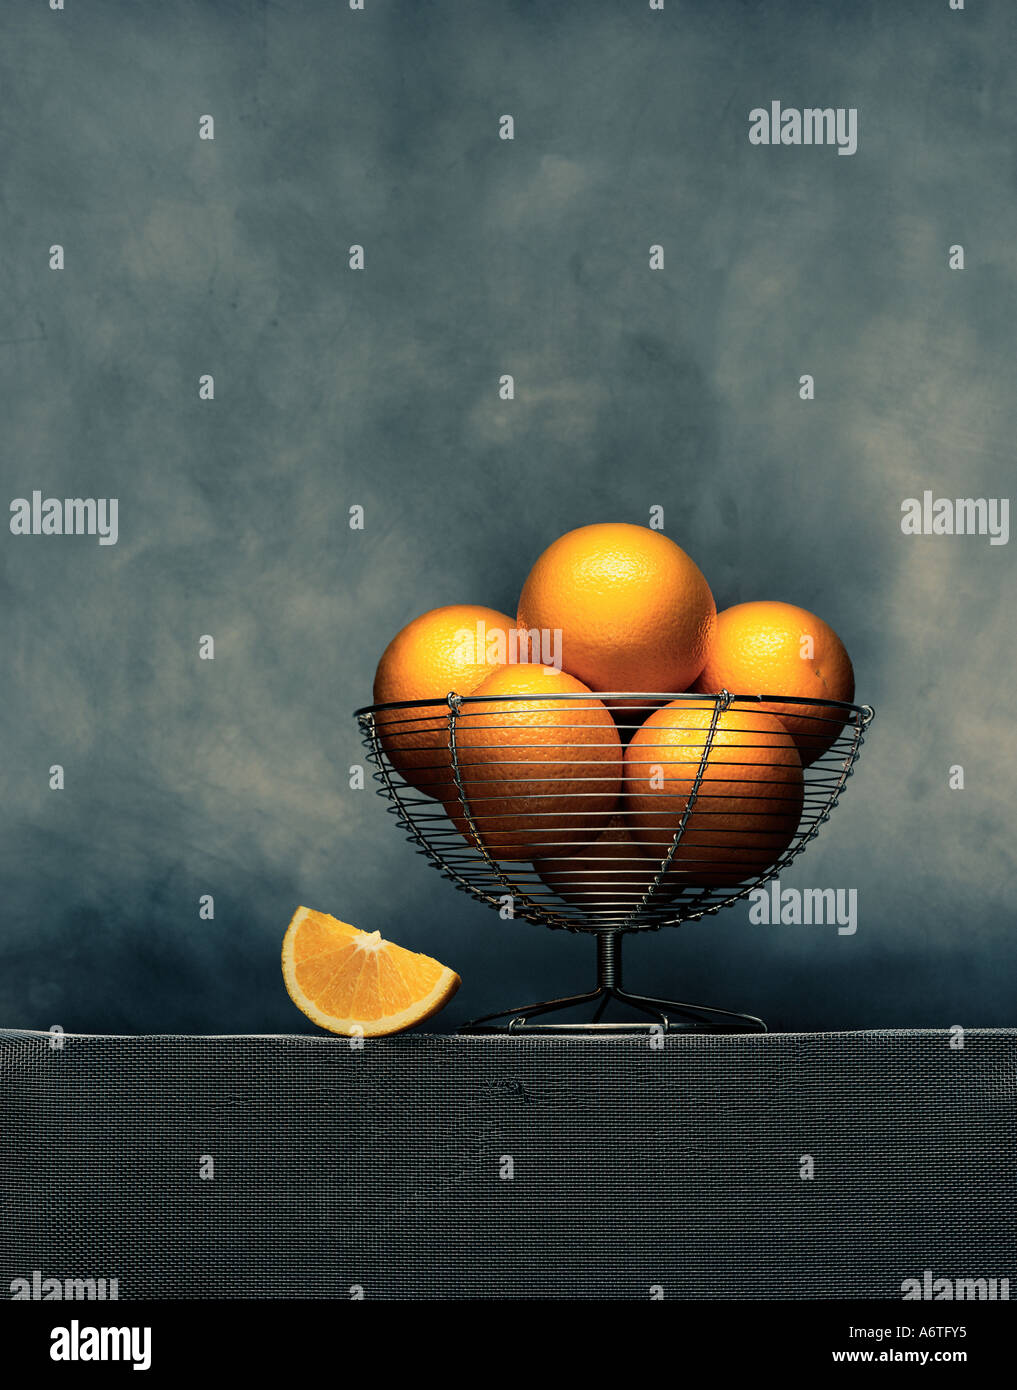 A bowl of oranges - Stock Image